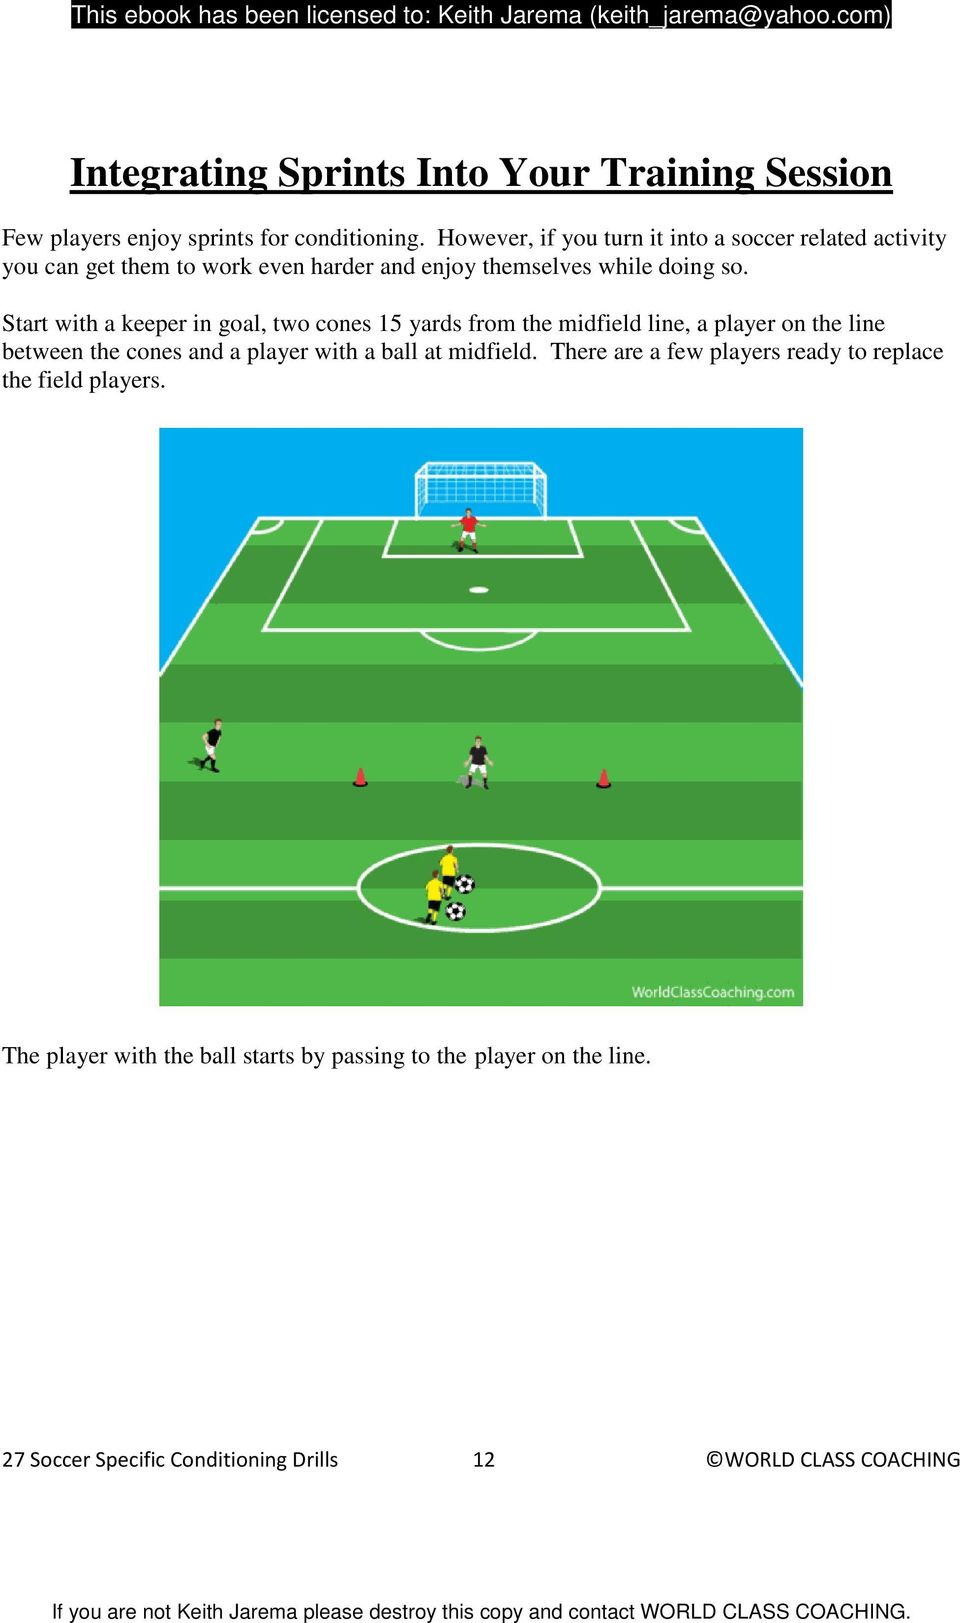 Start with a keeper in goal, two cones 15 yards from the midfield line, a player on the line between the cones and a player with a ball at